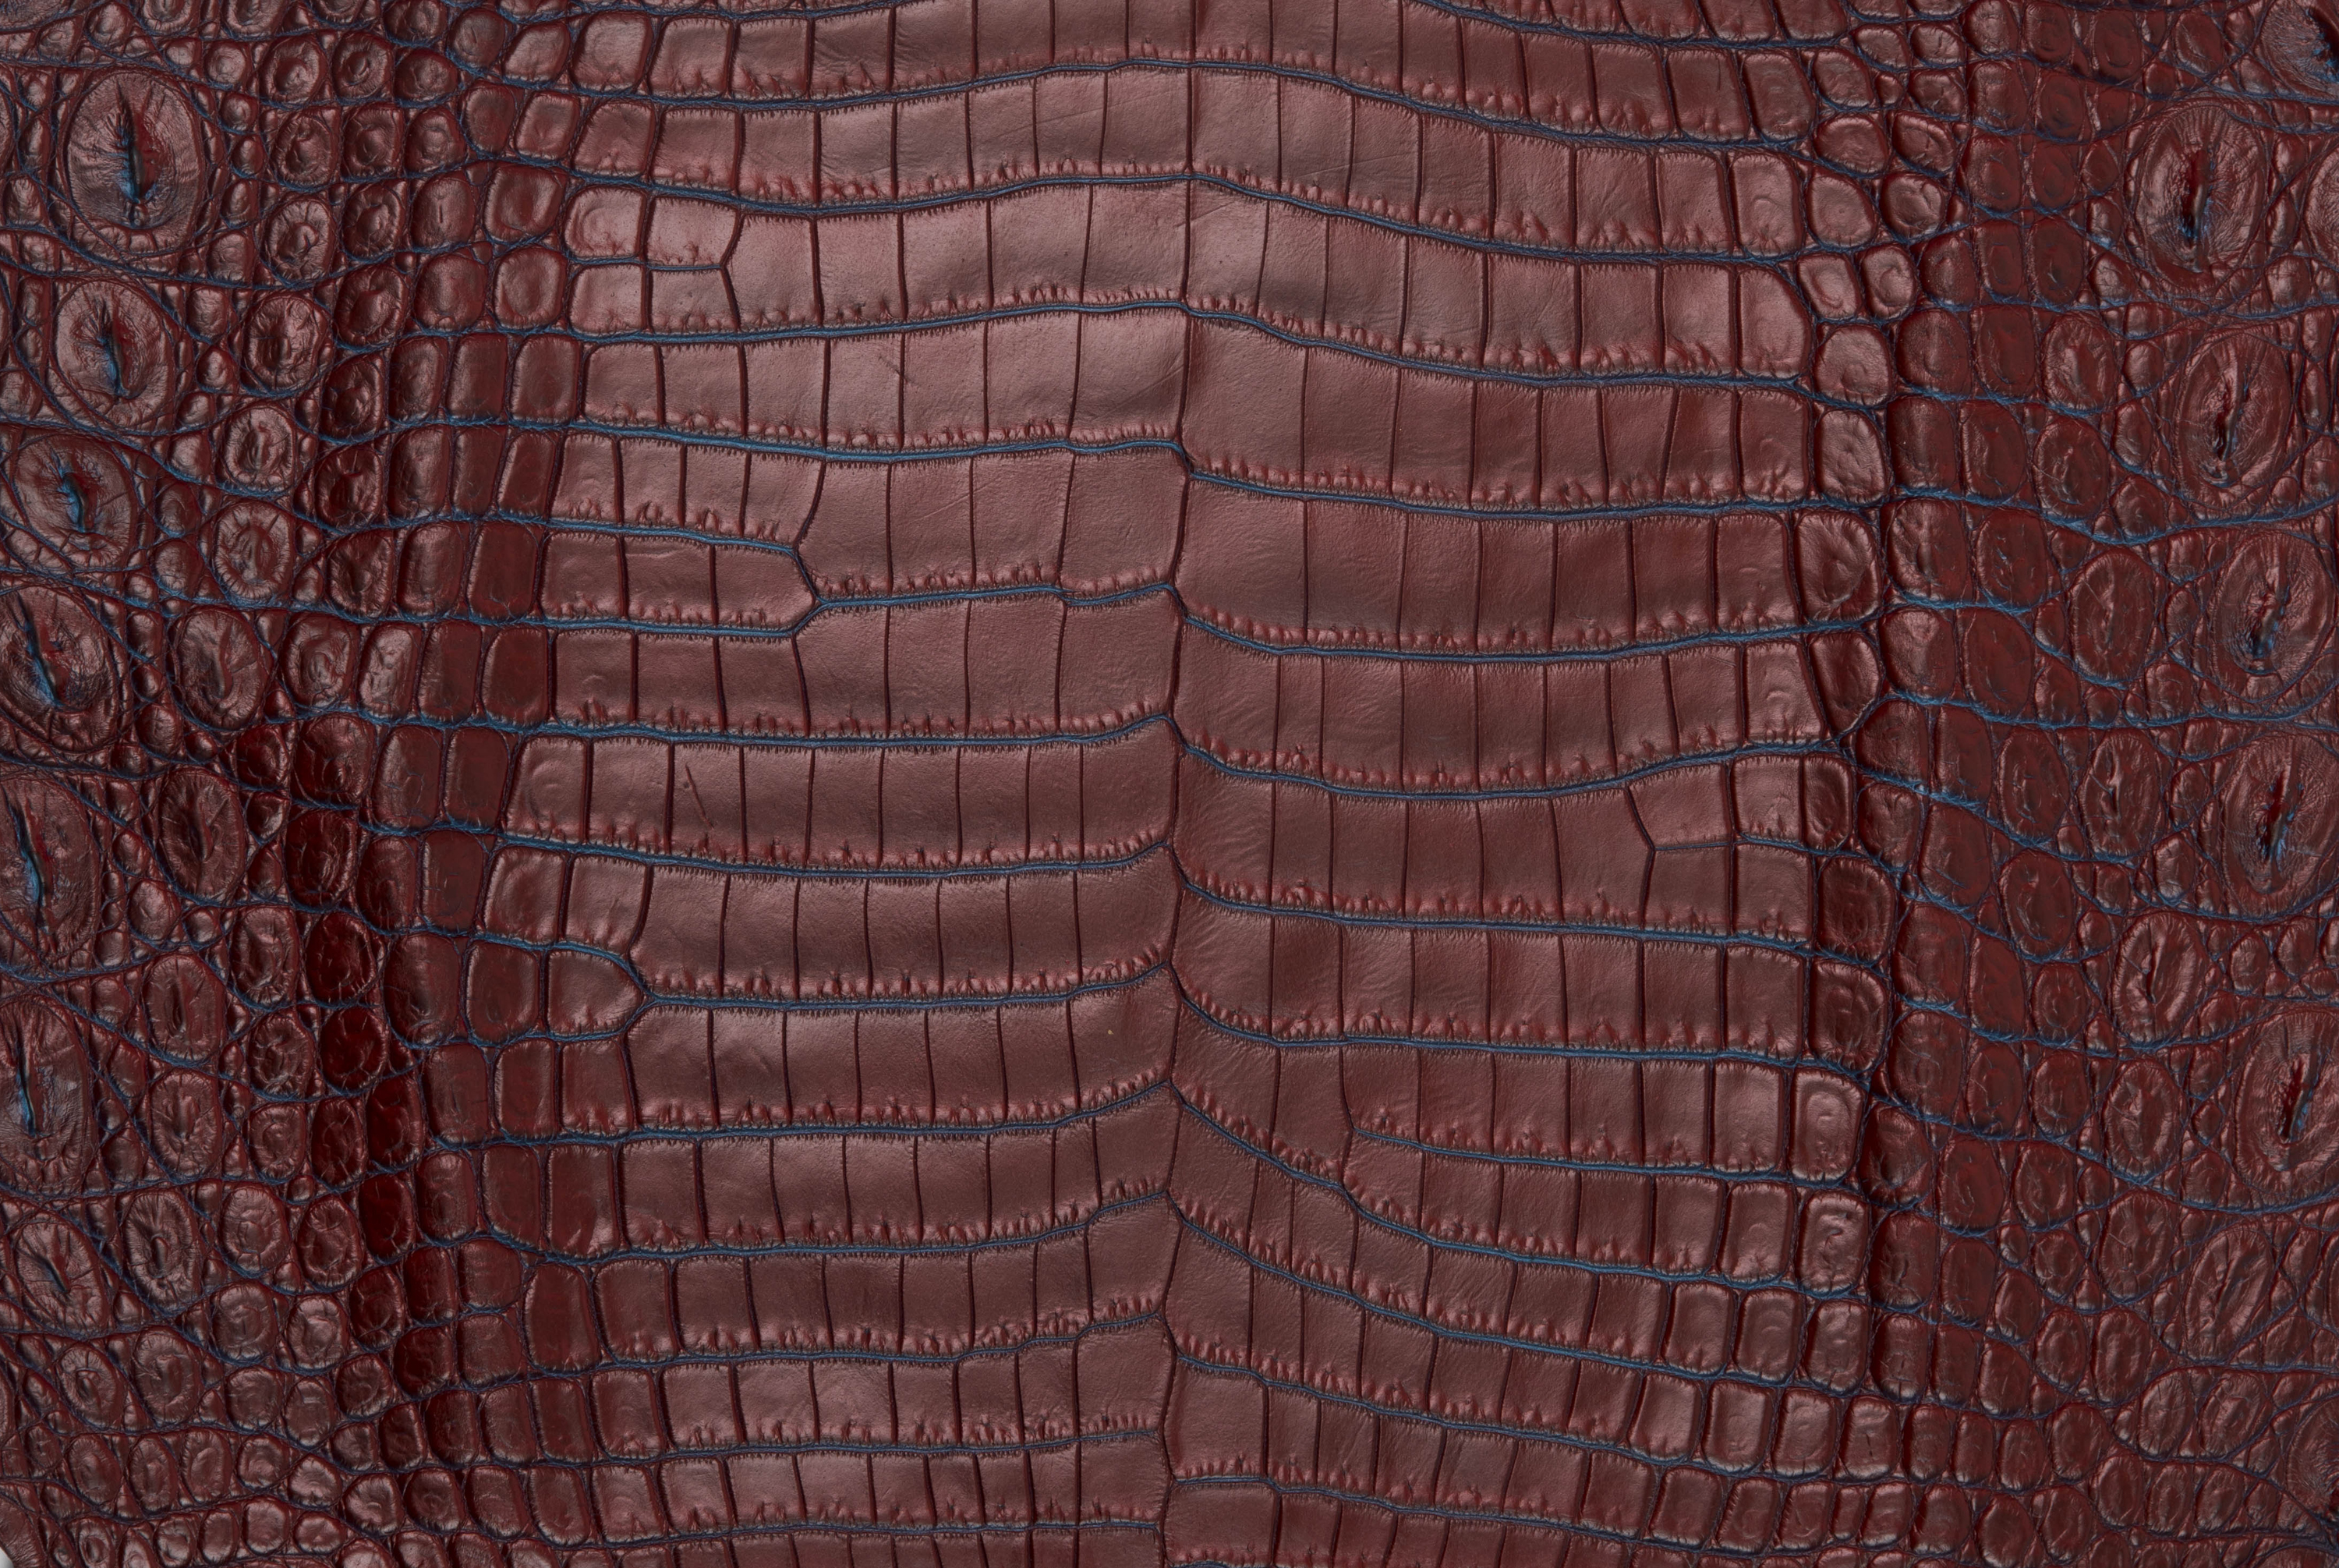 Nile Crocodile Skin